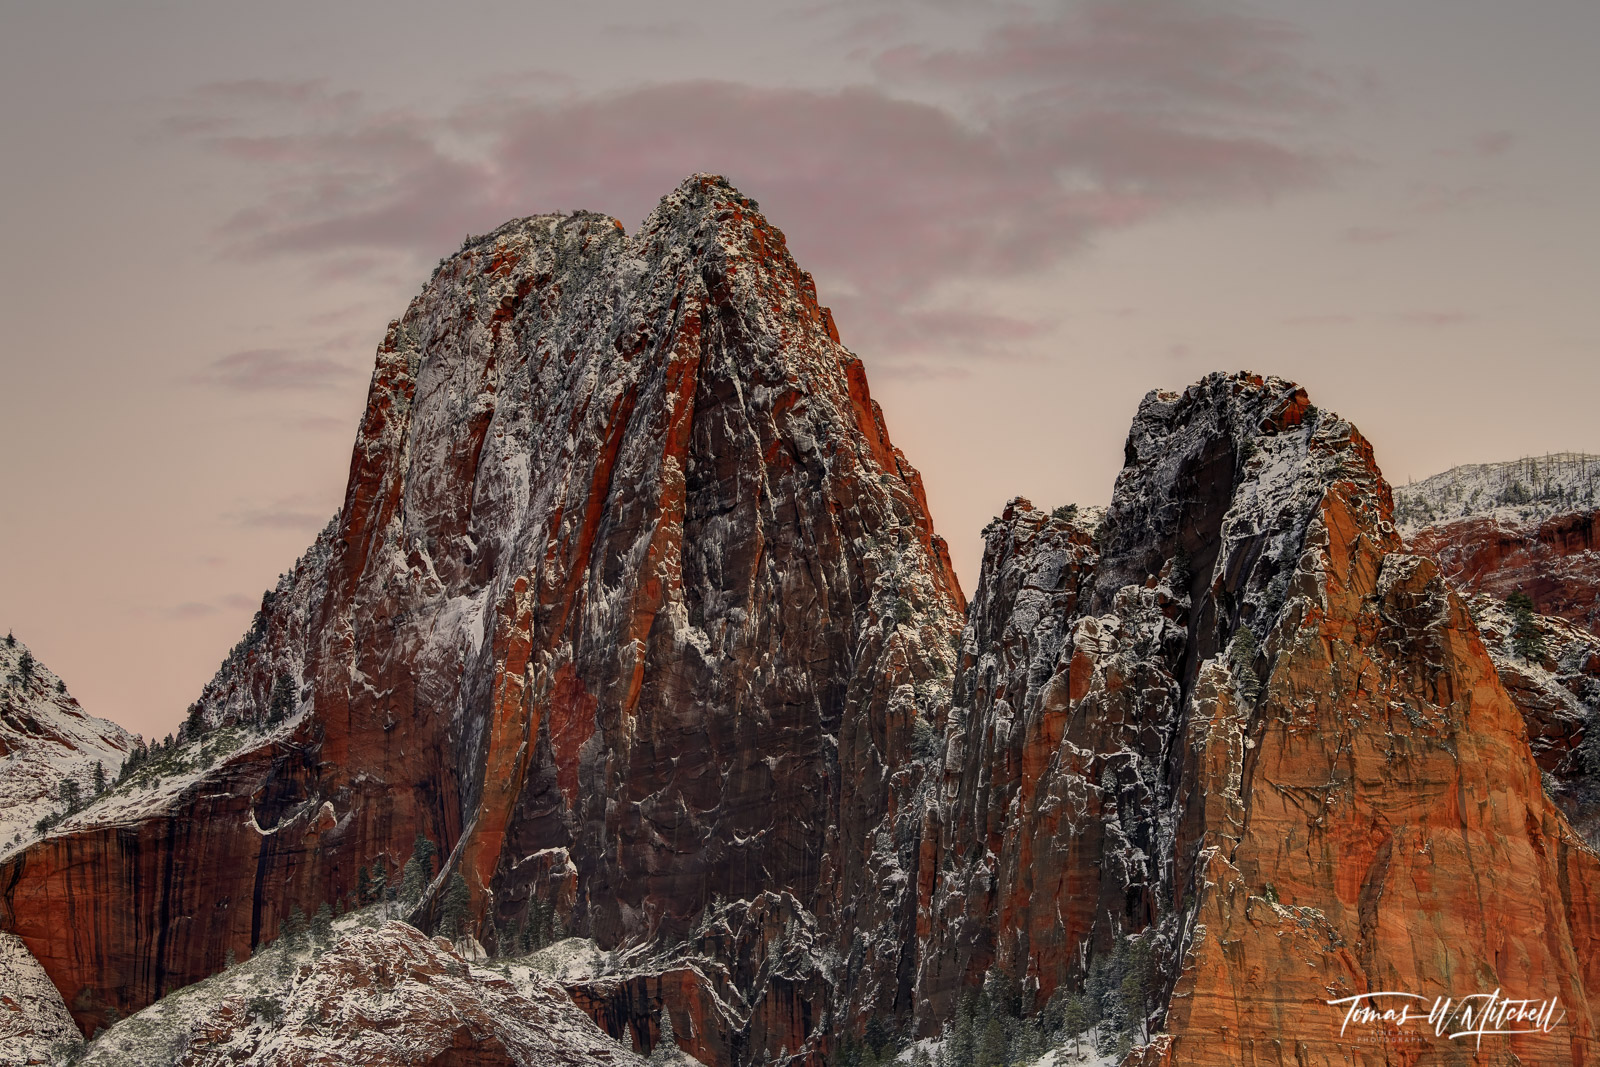 Limited Edition of 100 Museum Grade, Fine Art Prints.I had planned to head to southern Utah to photograph Zion National Park...